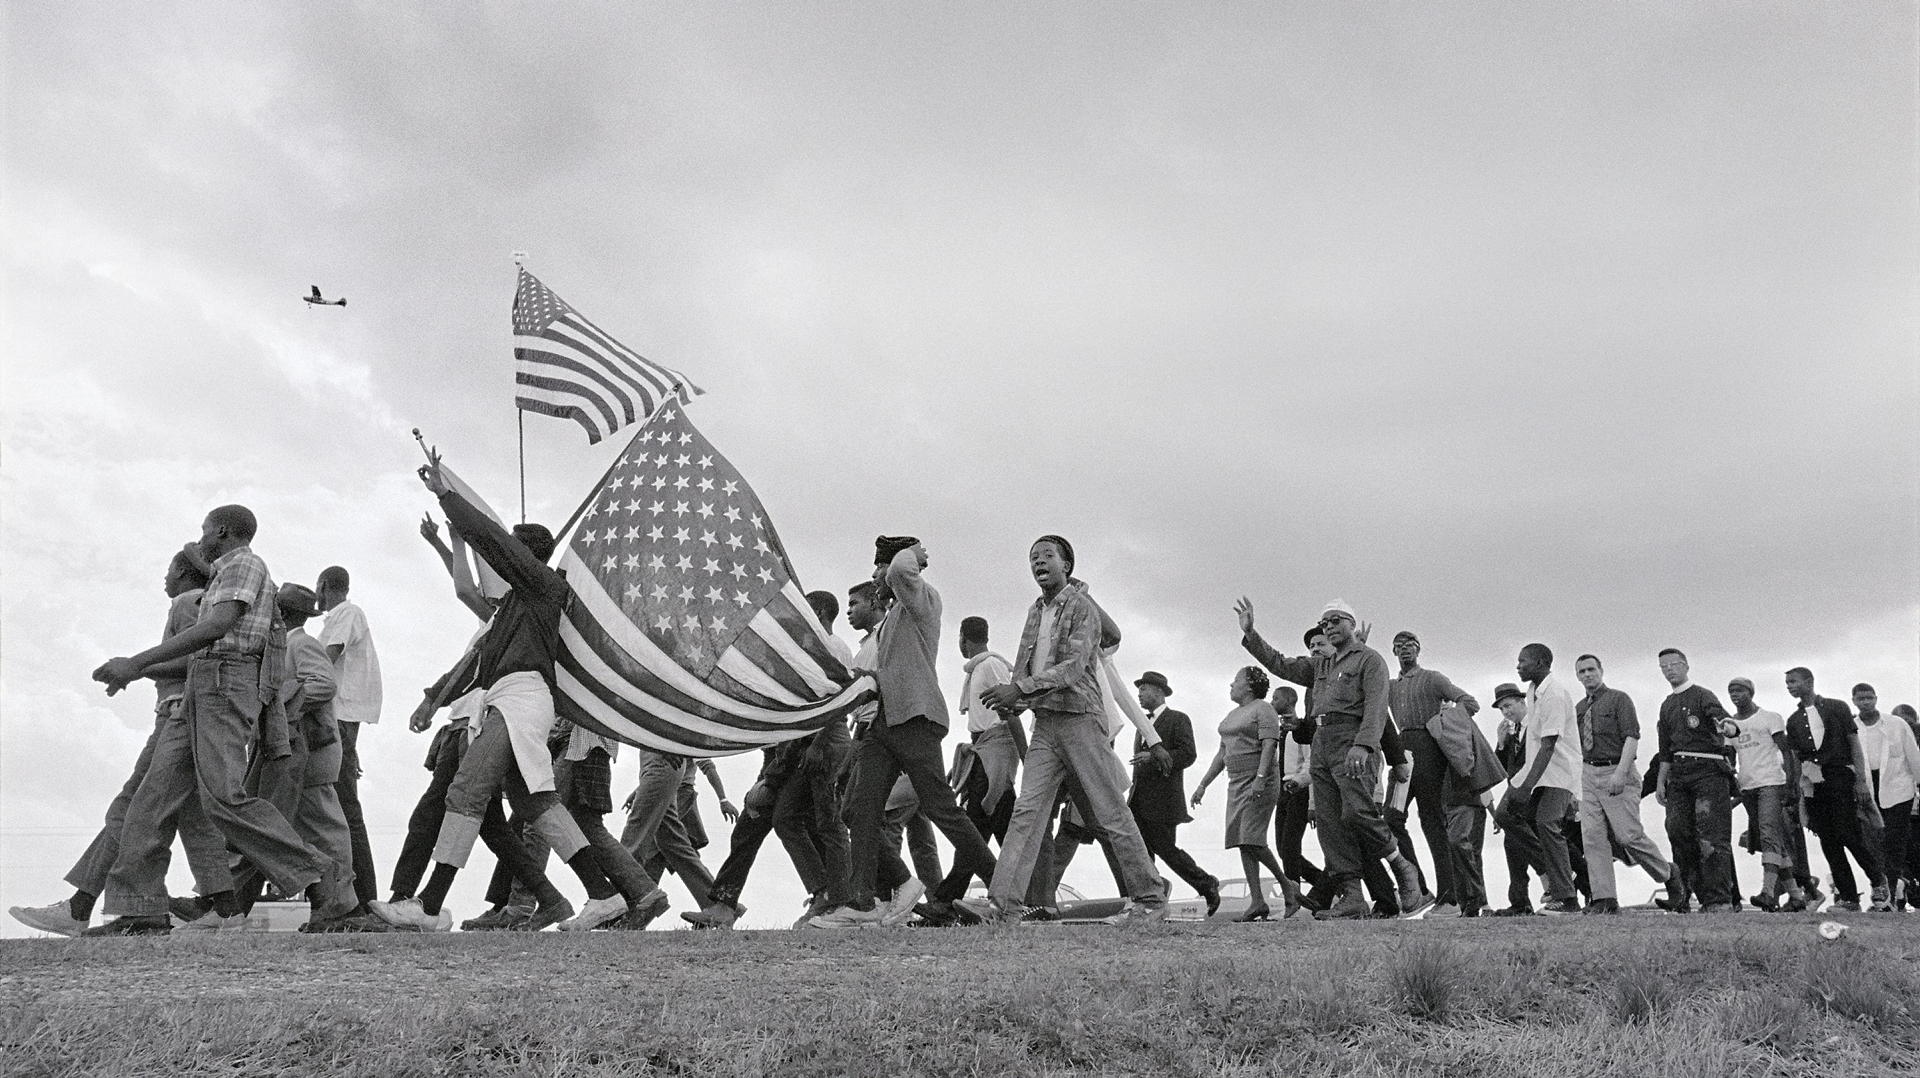 TKS1676432 Alabama: March 21, 1965. Selma to Montgomery March for voting rights: Marchers and flags cross the horizon. Airplane is reconnaissance plane of Alabama National Guard on lookout for threats to march.